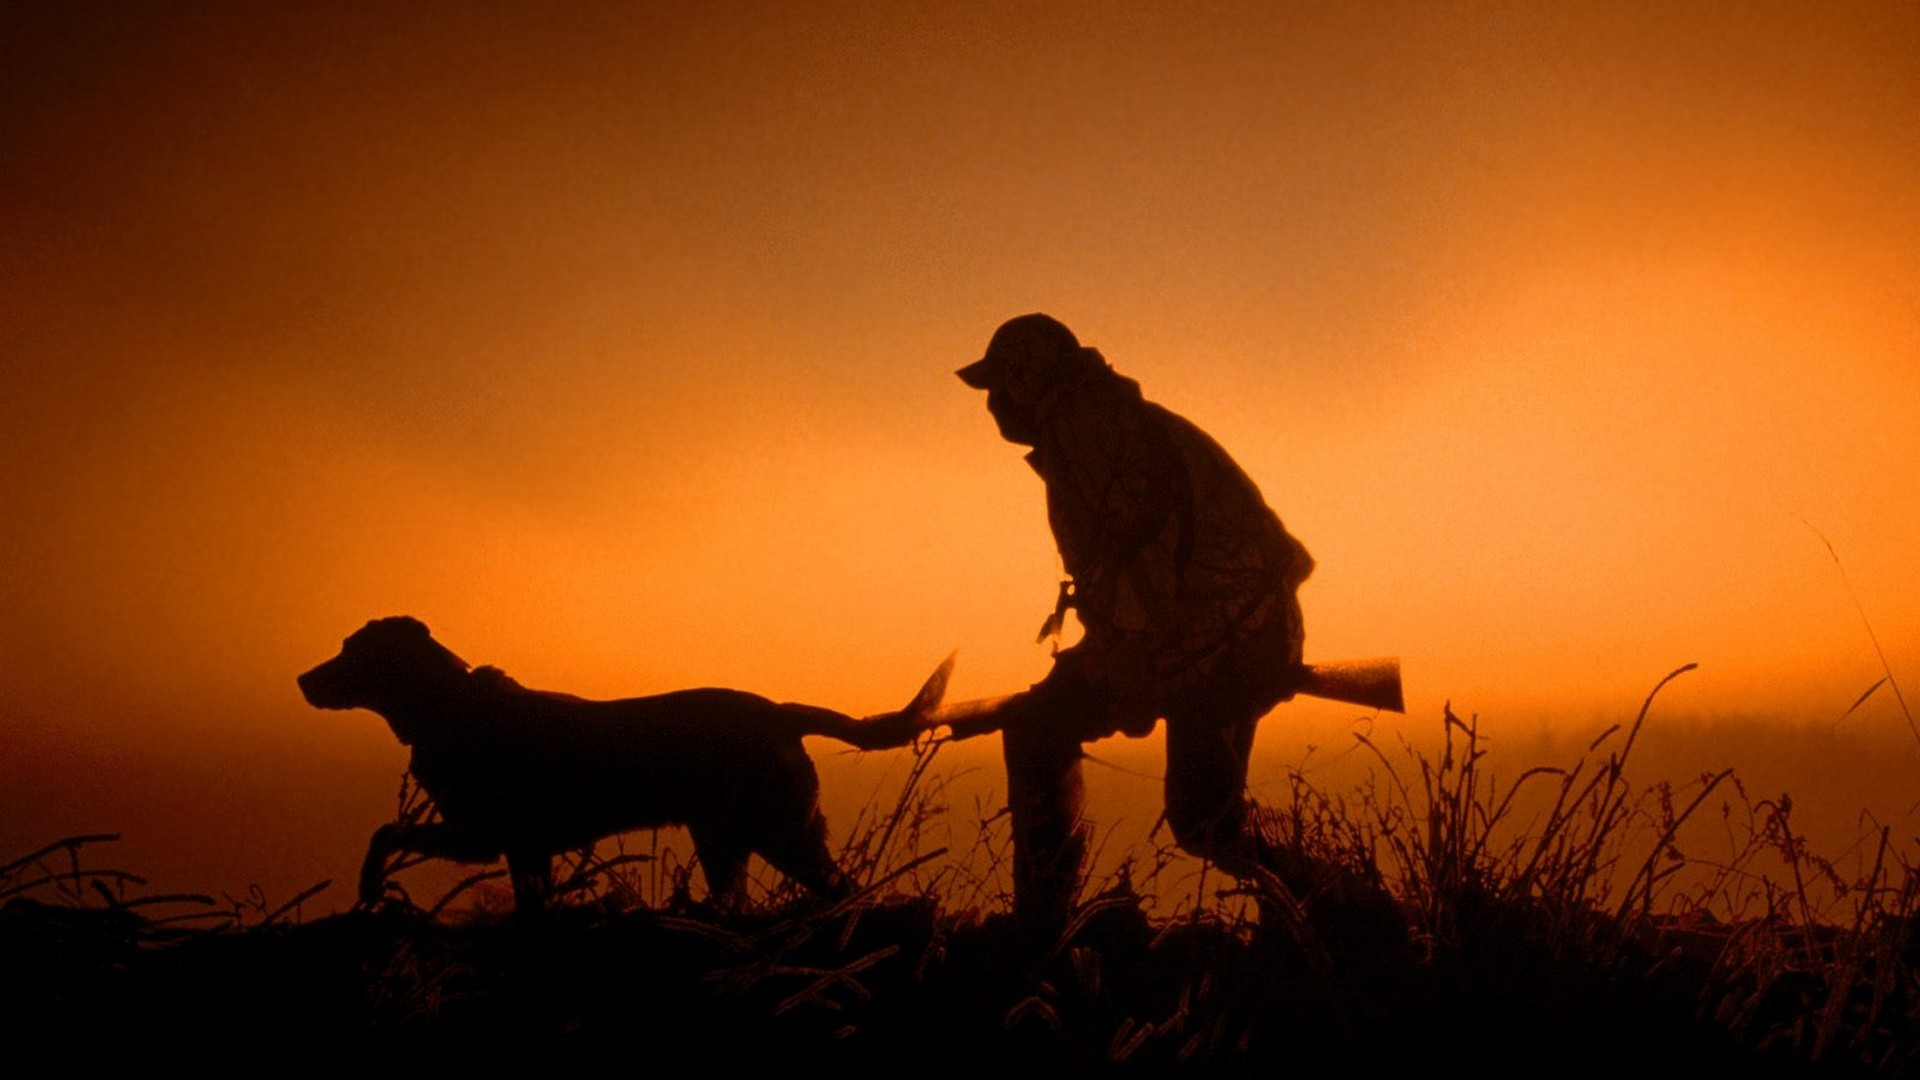 sunset guns dawn hunter silhouettes dogs dusk hunting wallpaper background